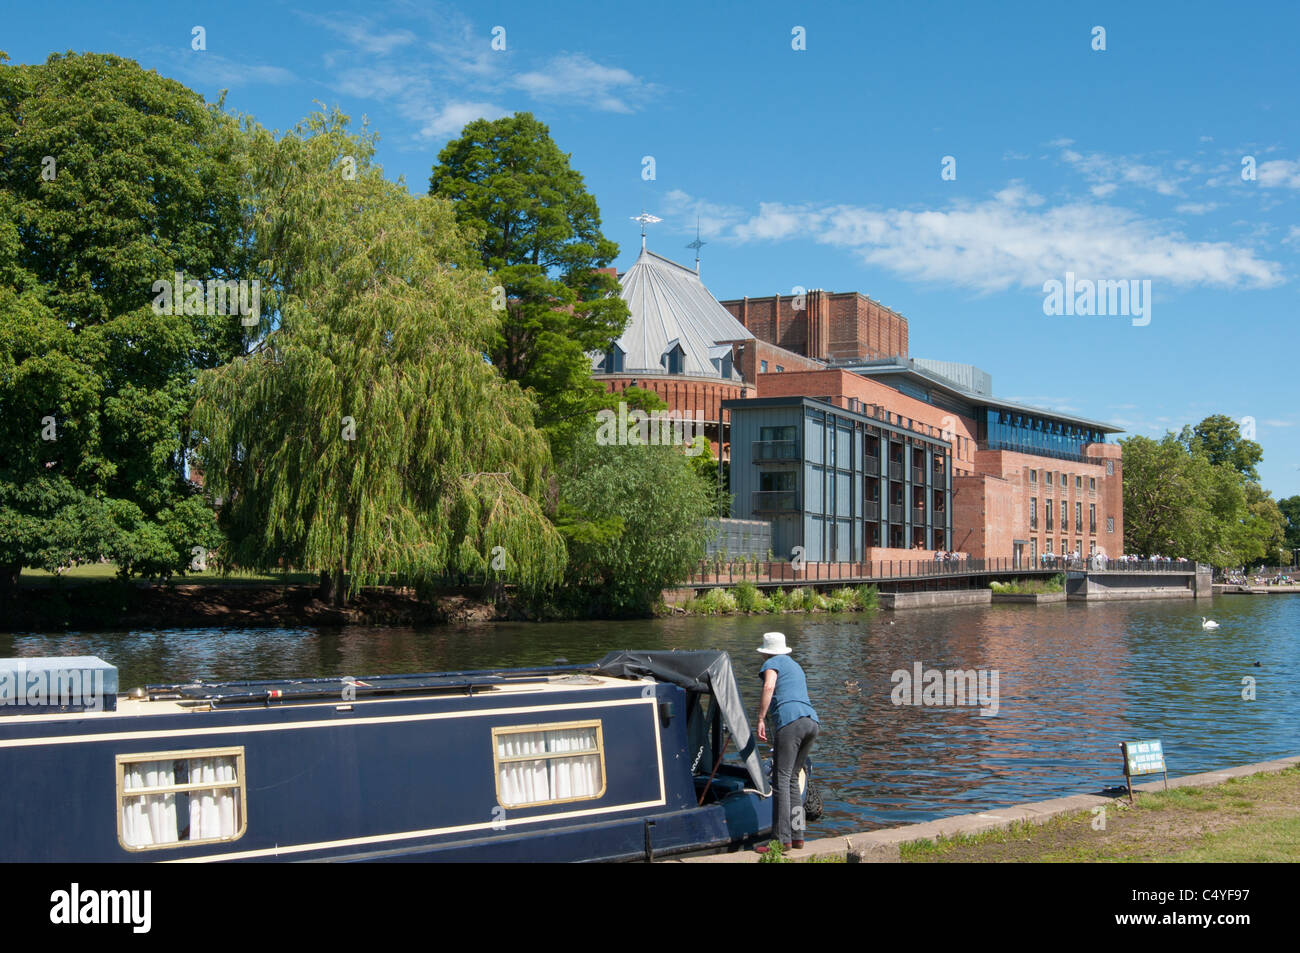 The river Avon in Stratford, with RSA theatre in Background. UK - Stock Image